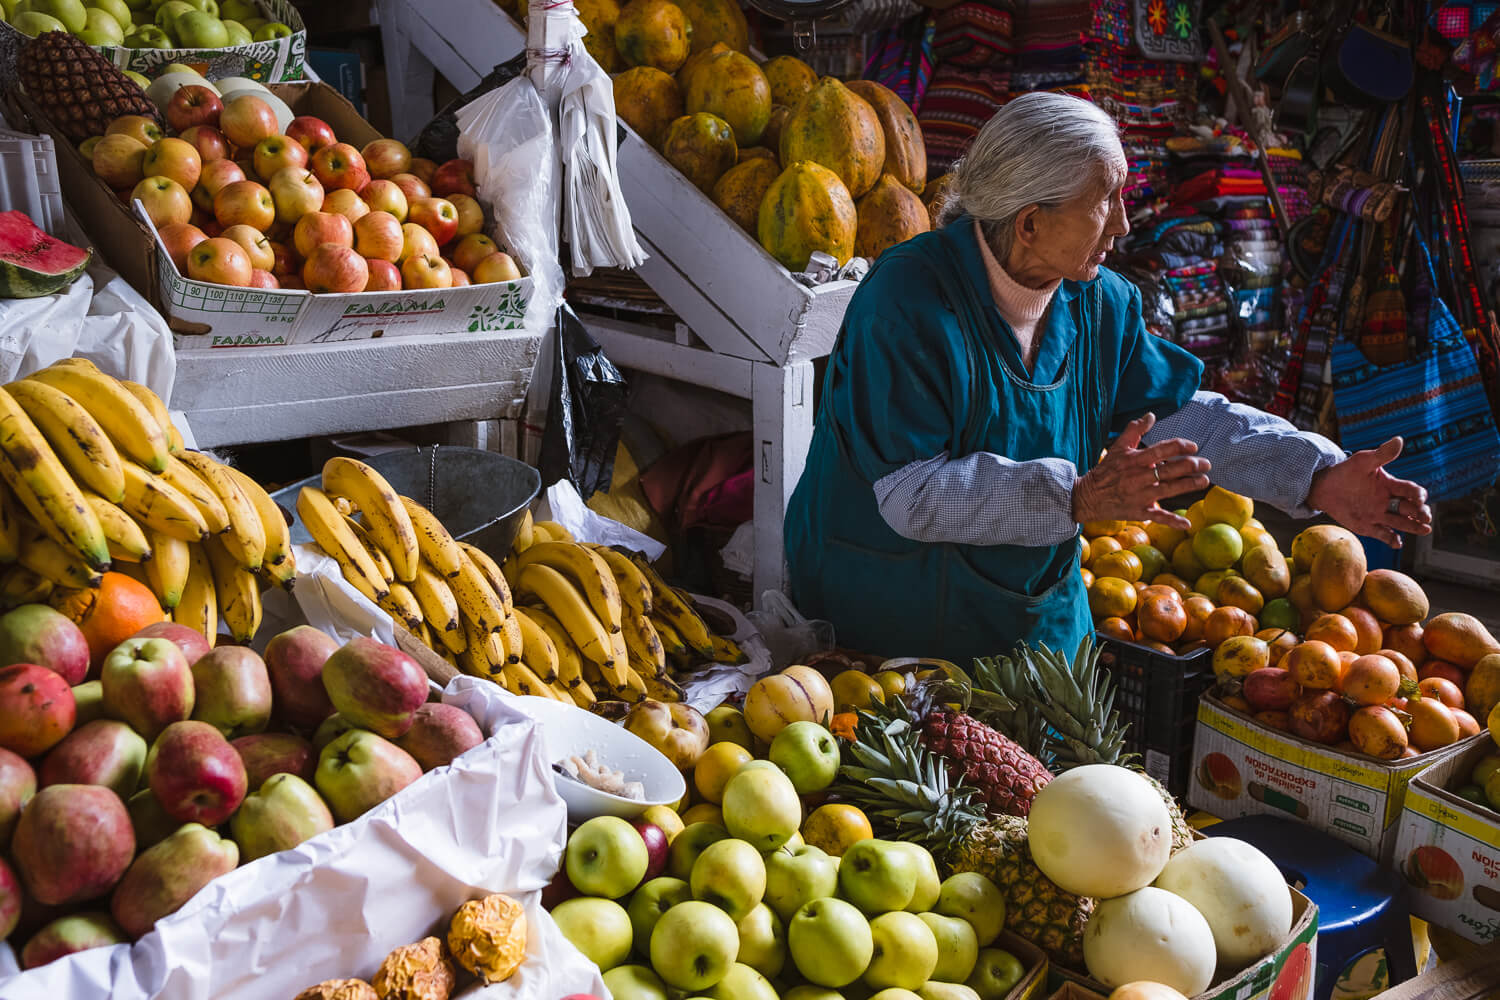 """Woman selling fruit in the San Pedro Market, Cusco. Travel photography and guide by © Natasha Lequepeys for """"And Then I Met Yoko"""". #cusco #peru #photoblog #travelblog #peruitinerary #cuscoitinerary"""